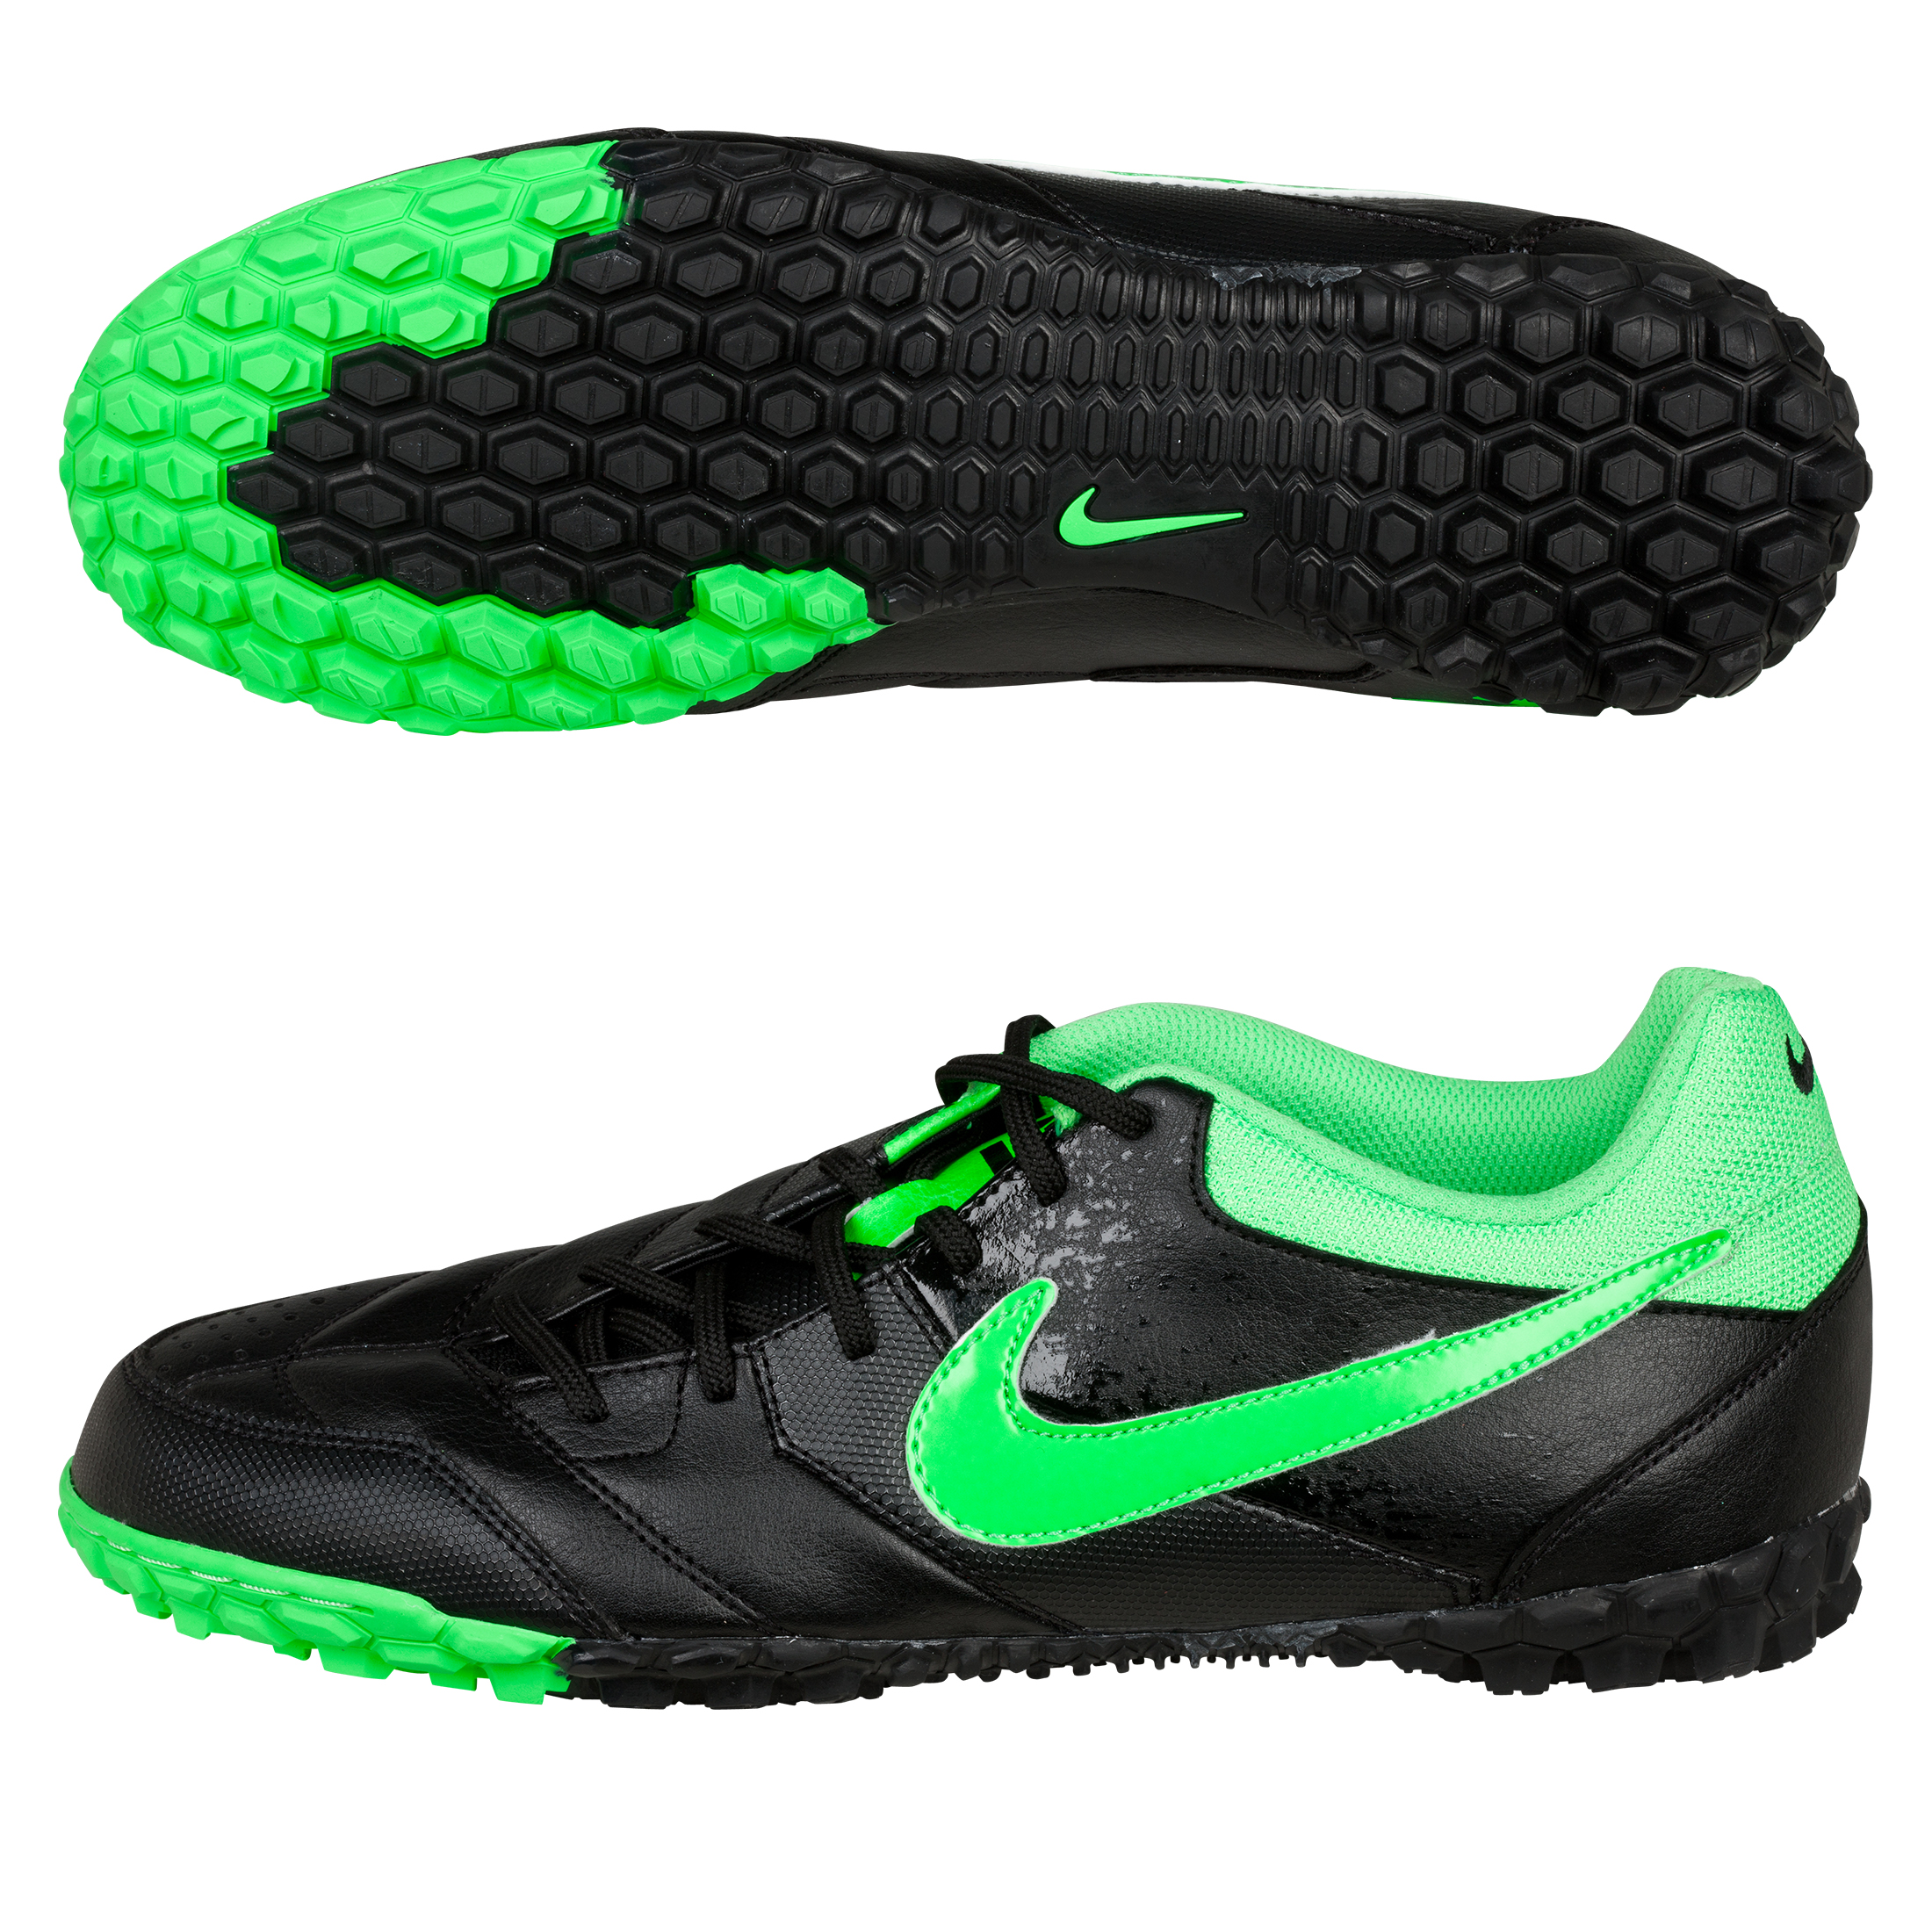 Nike5 Bomba Trainers -  Black/Poison Green